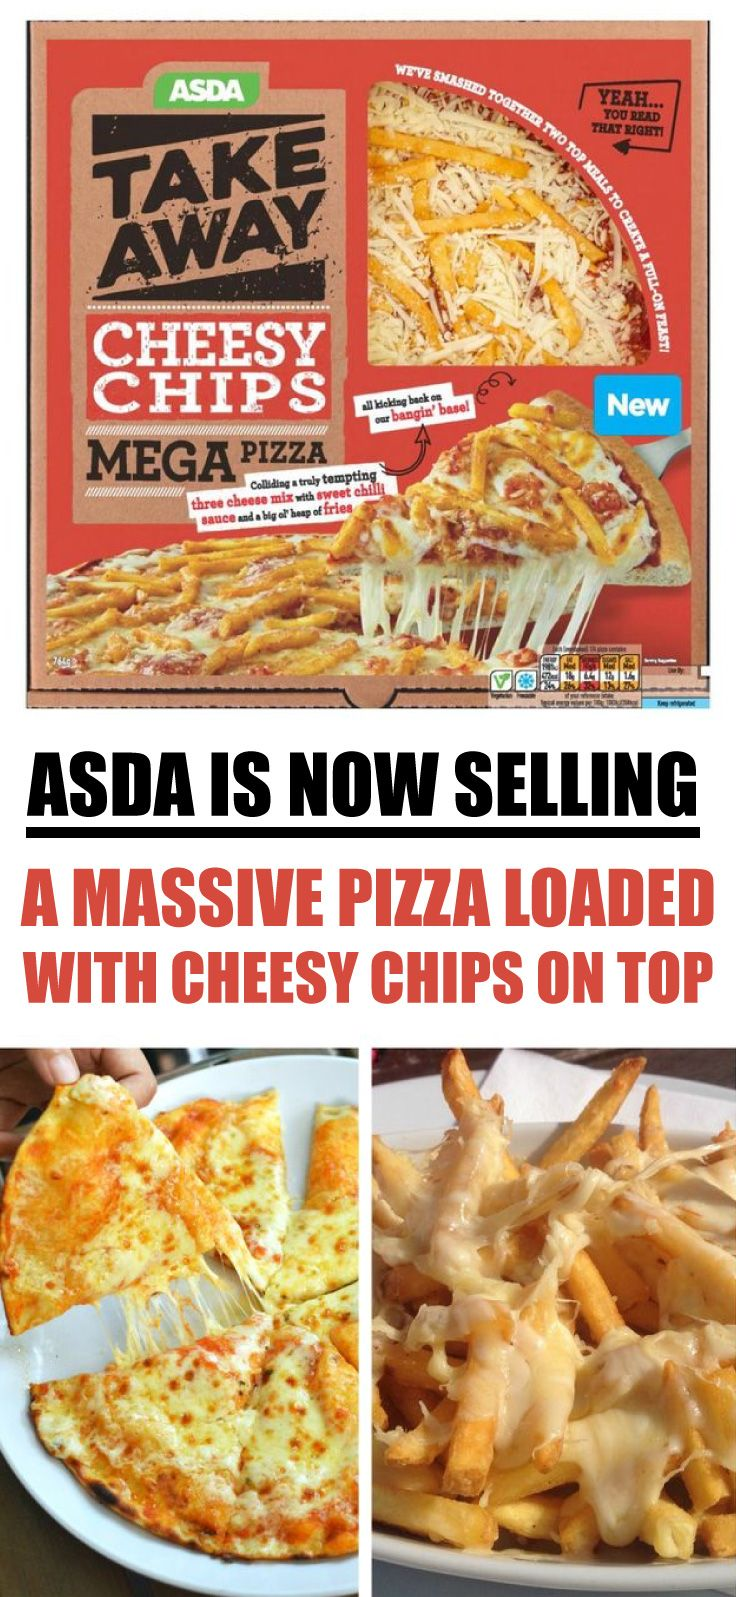 Cheesy Chip Mega Pizza Available Soon Asda Cheesy Chips Chips